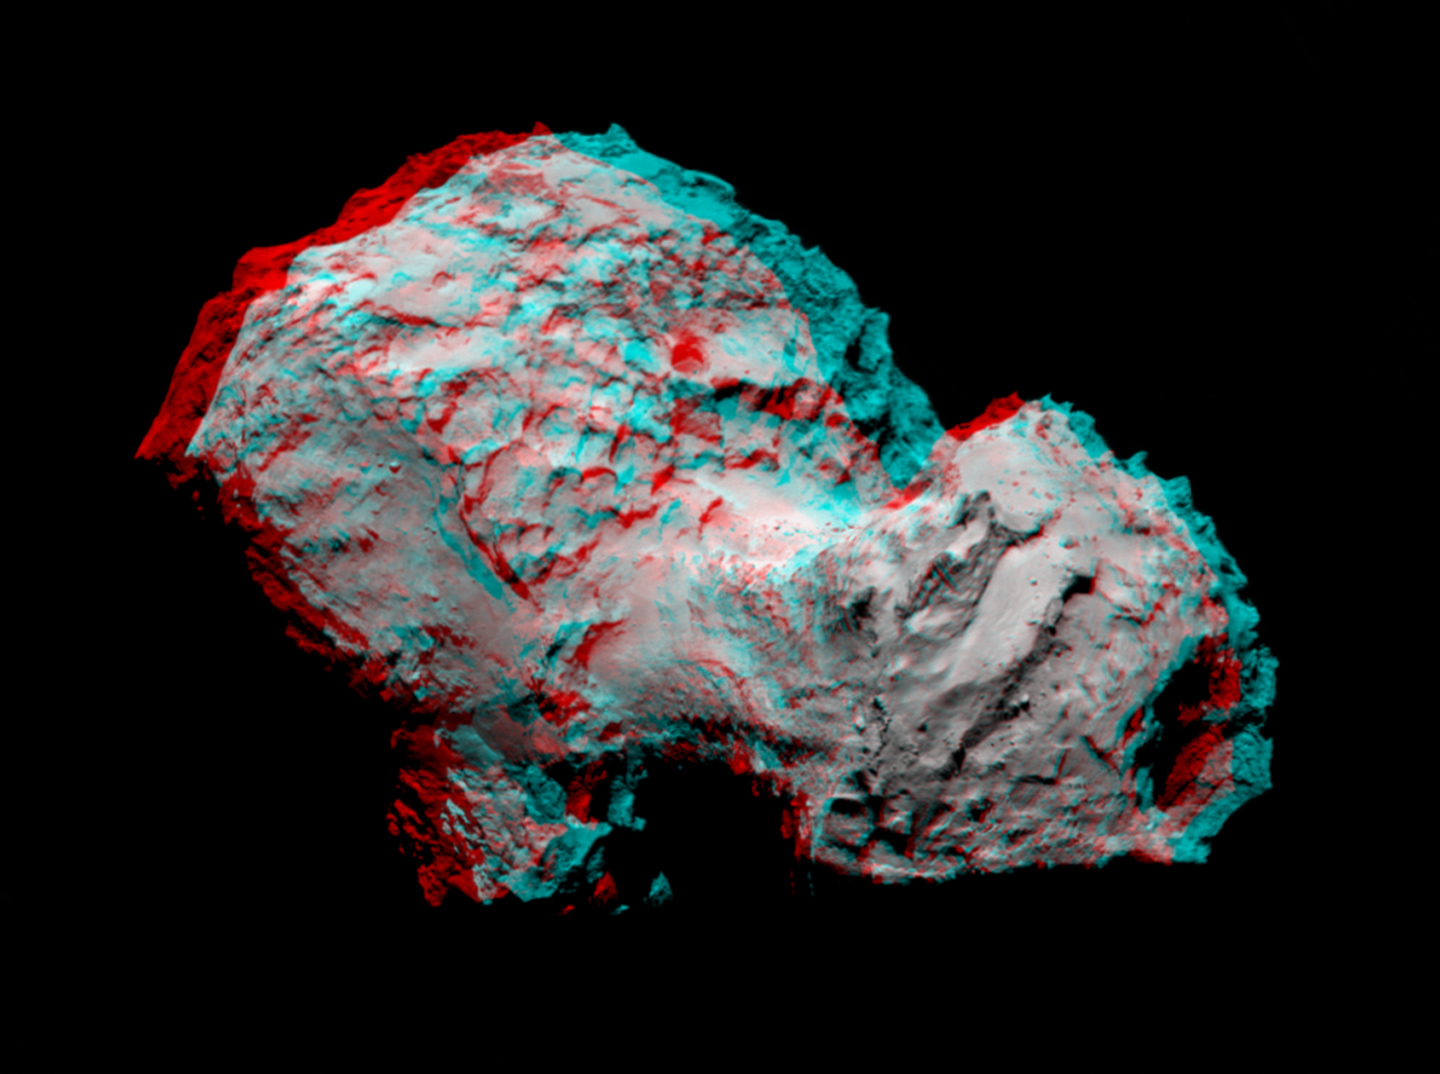 Close Enough to Touch: Top 10 Photos From the Rosetta Comet Spacecraft